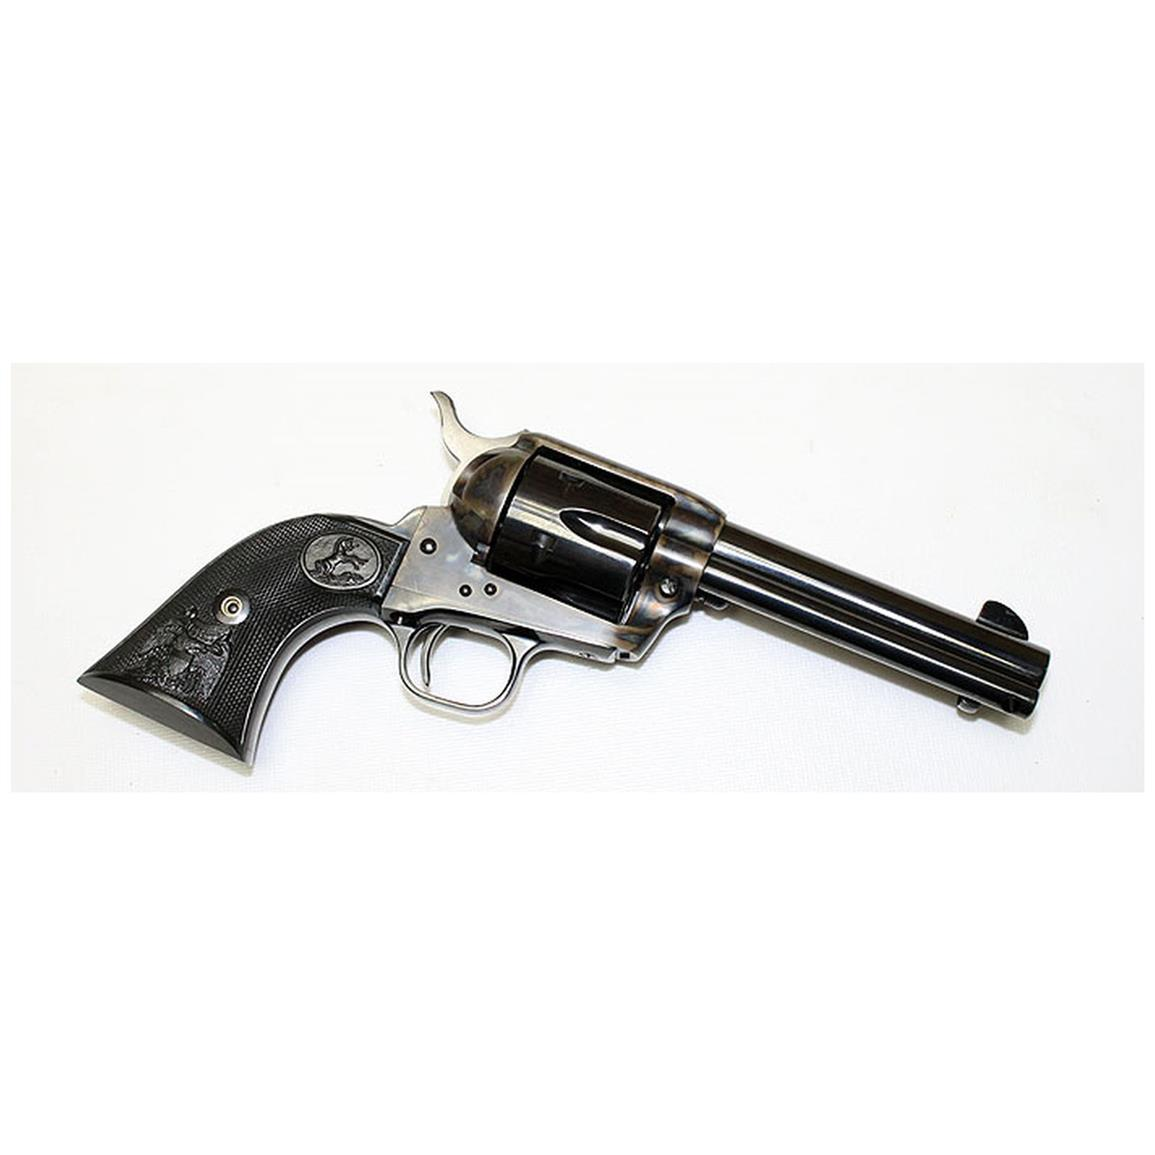 "Colt Single Action Army, Revolver, .45 Colt,  P1850, 98289000903, 5.50"" Barrel, 6-round"